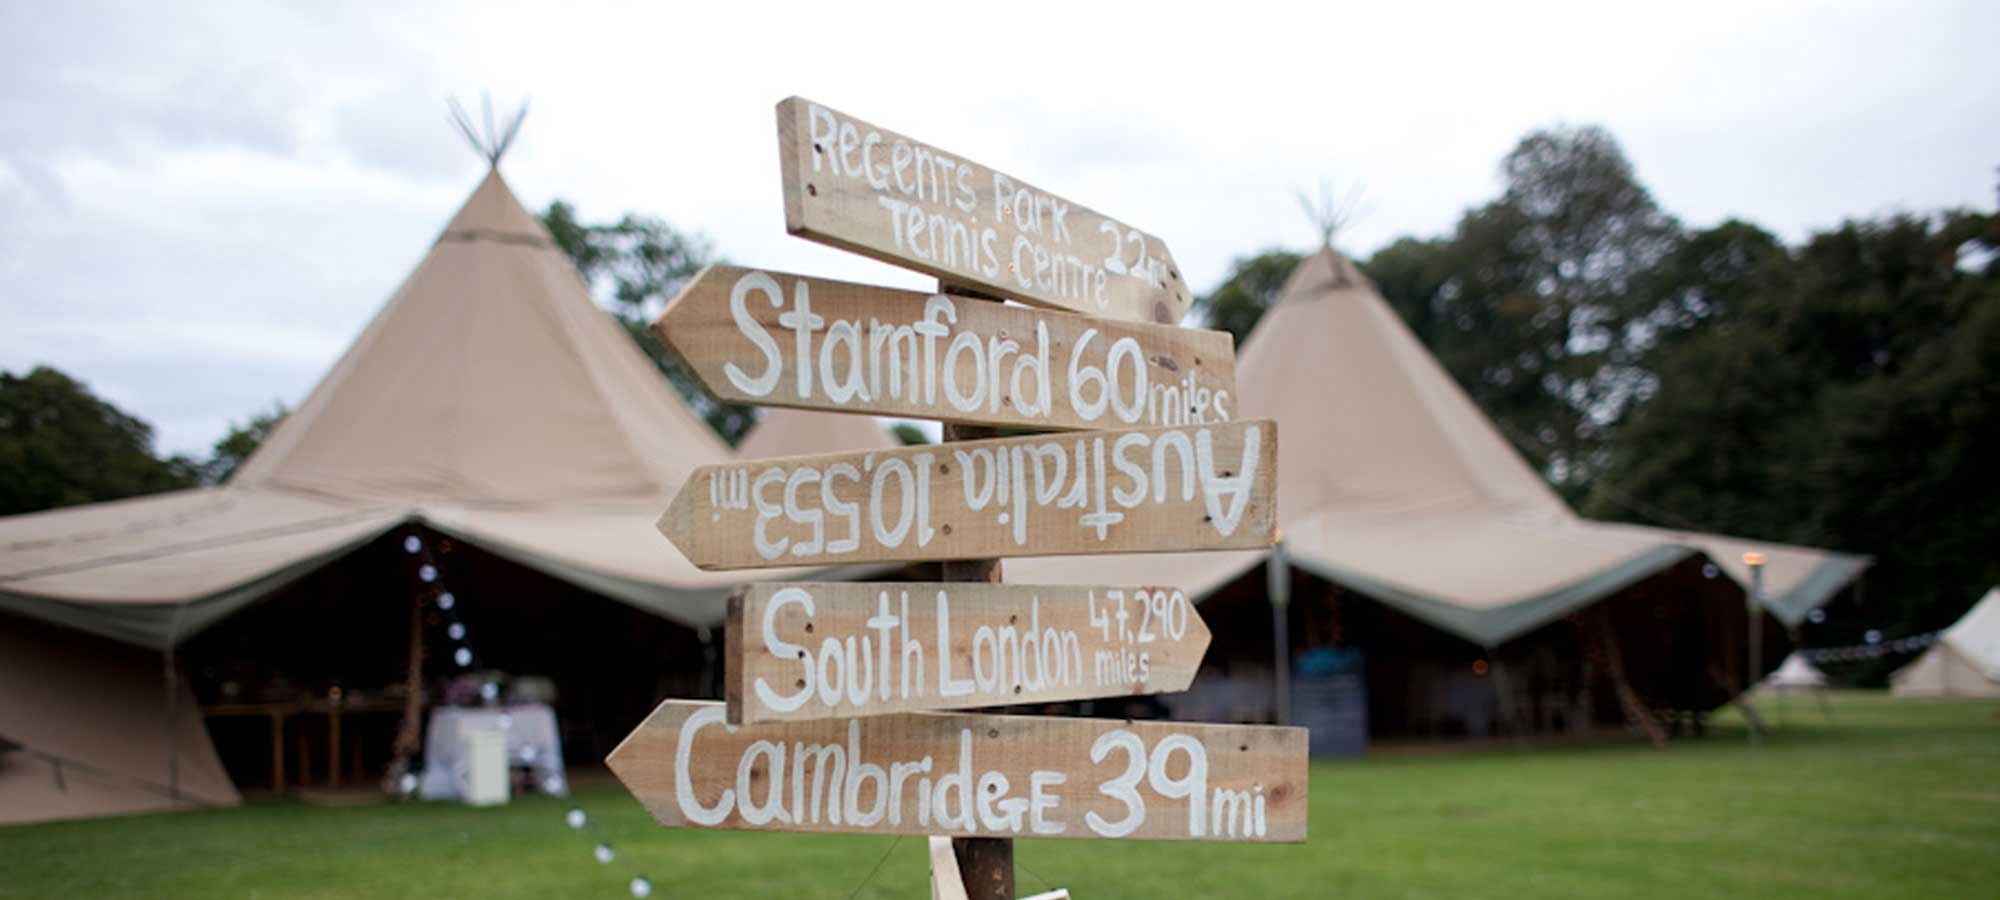 Tentipi event tipi signage - event tipis to buy